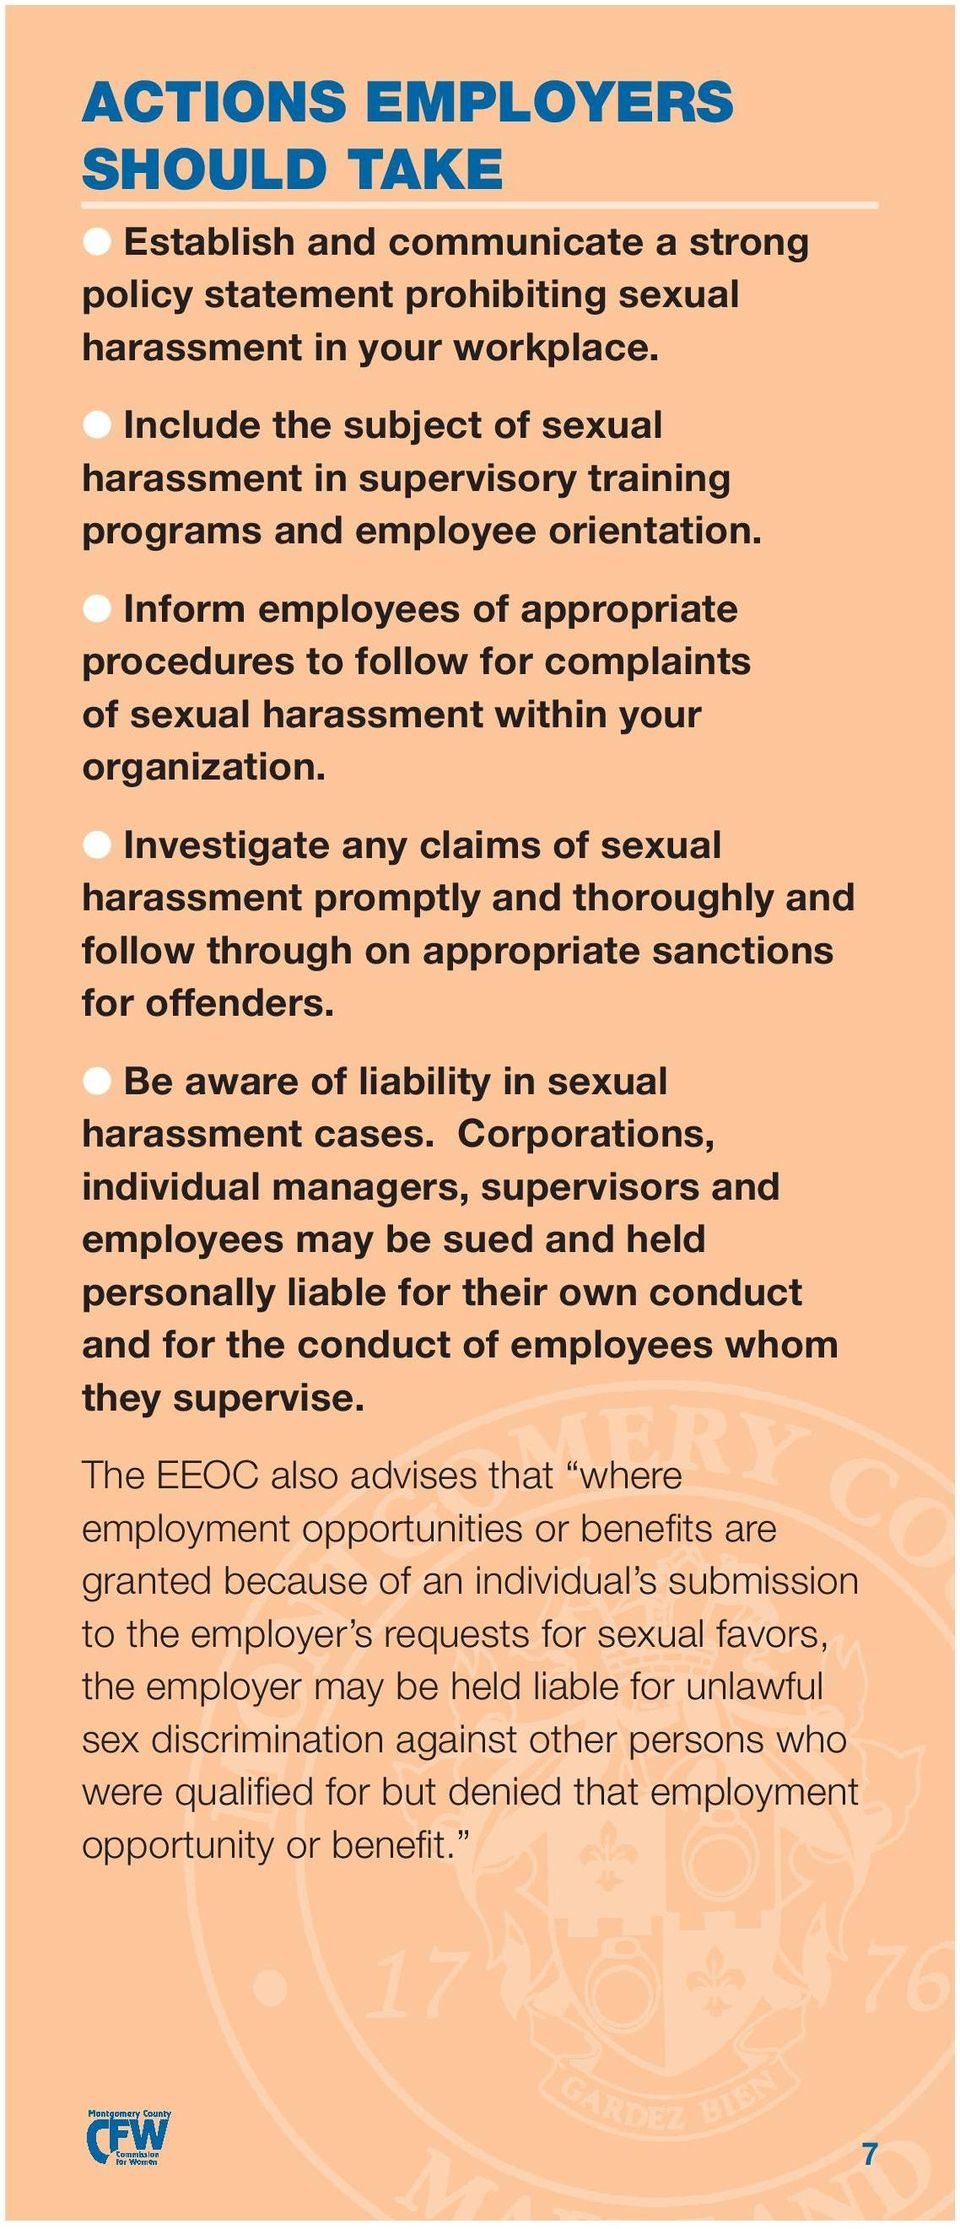 l Inform employees of appropriate procedures to follow for complaints of sexual harassment within your organization.